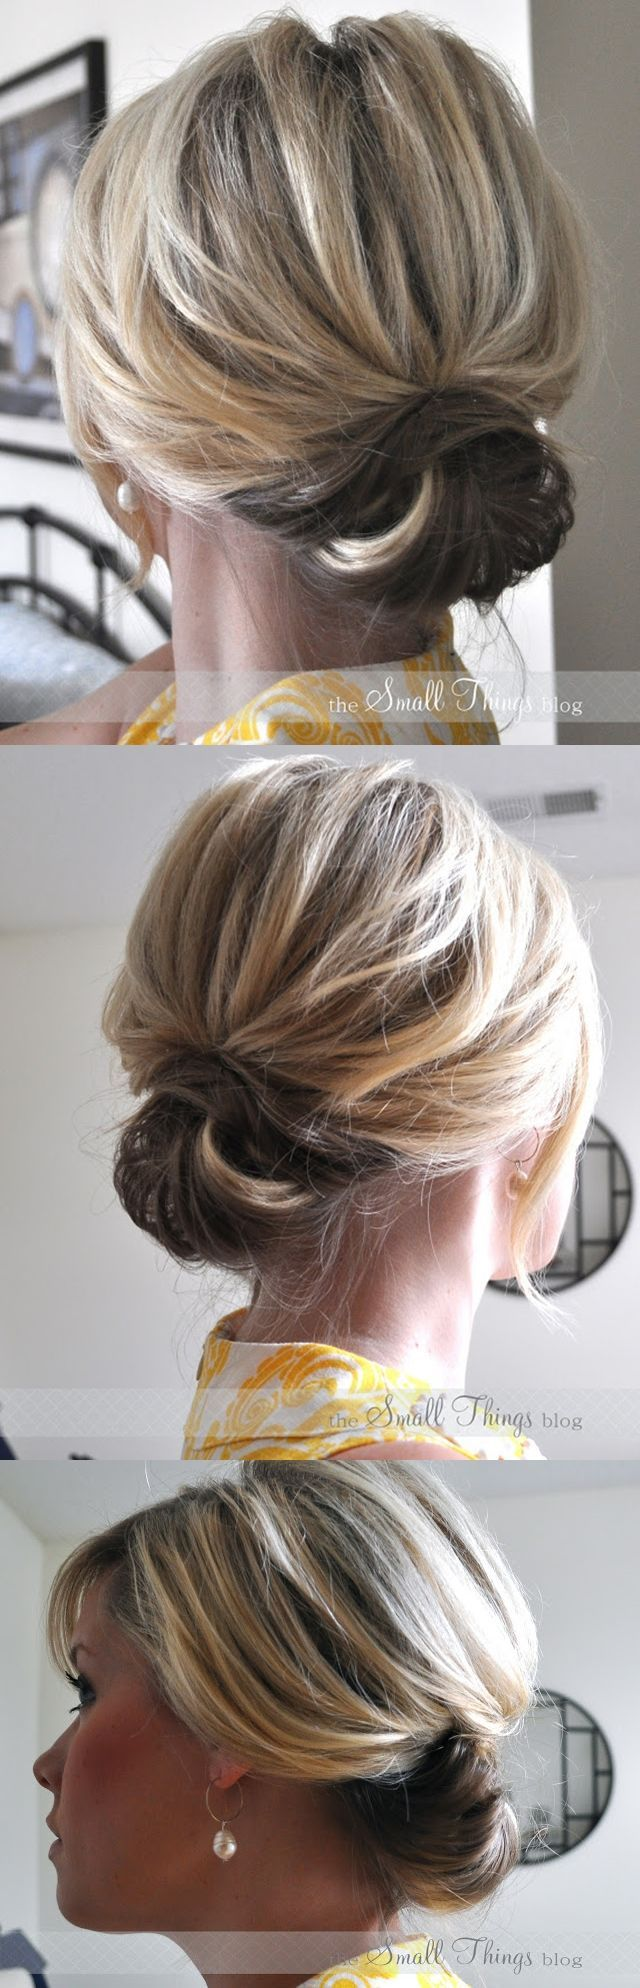 Diy Hairstyle Chic Up Do For Short Hair Step By Step Video Tutorial Looks For Short Hair